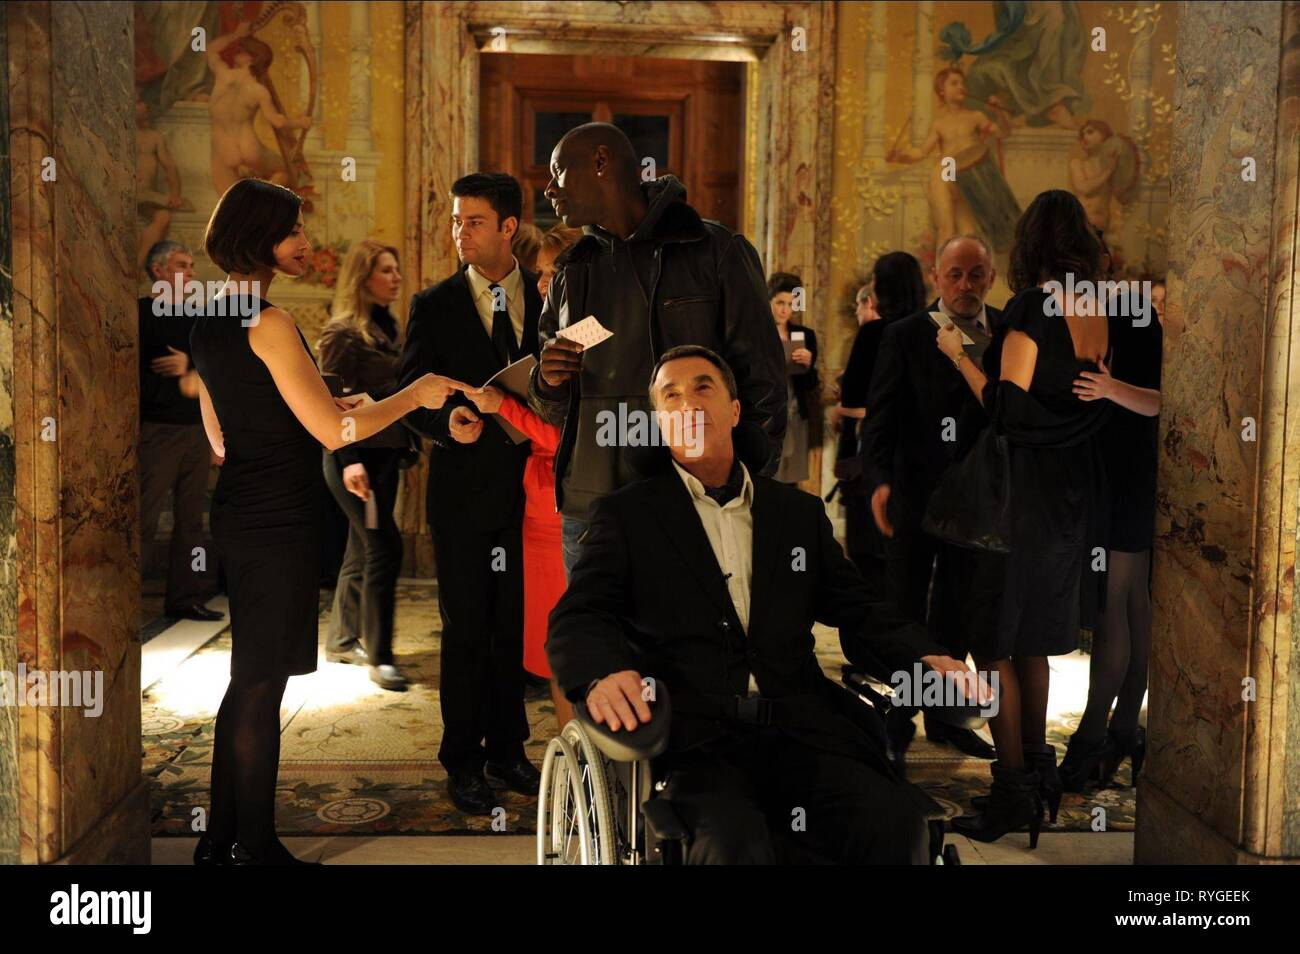 OMAR SY, FRANCOIS CLUZET, INTOUCHABLES, 2011 - Stock Image